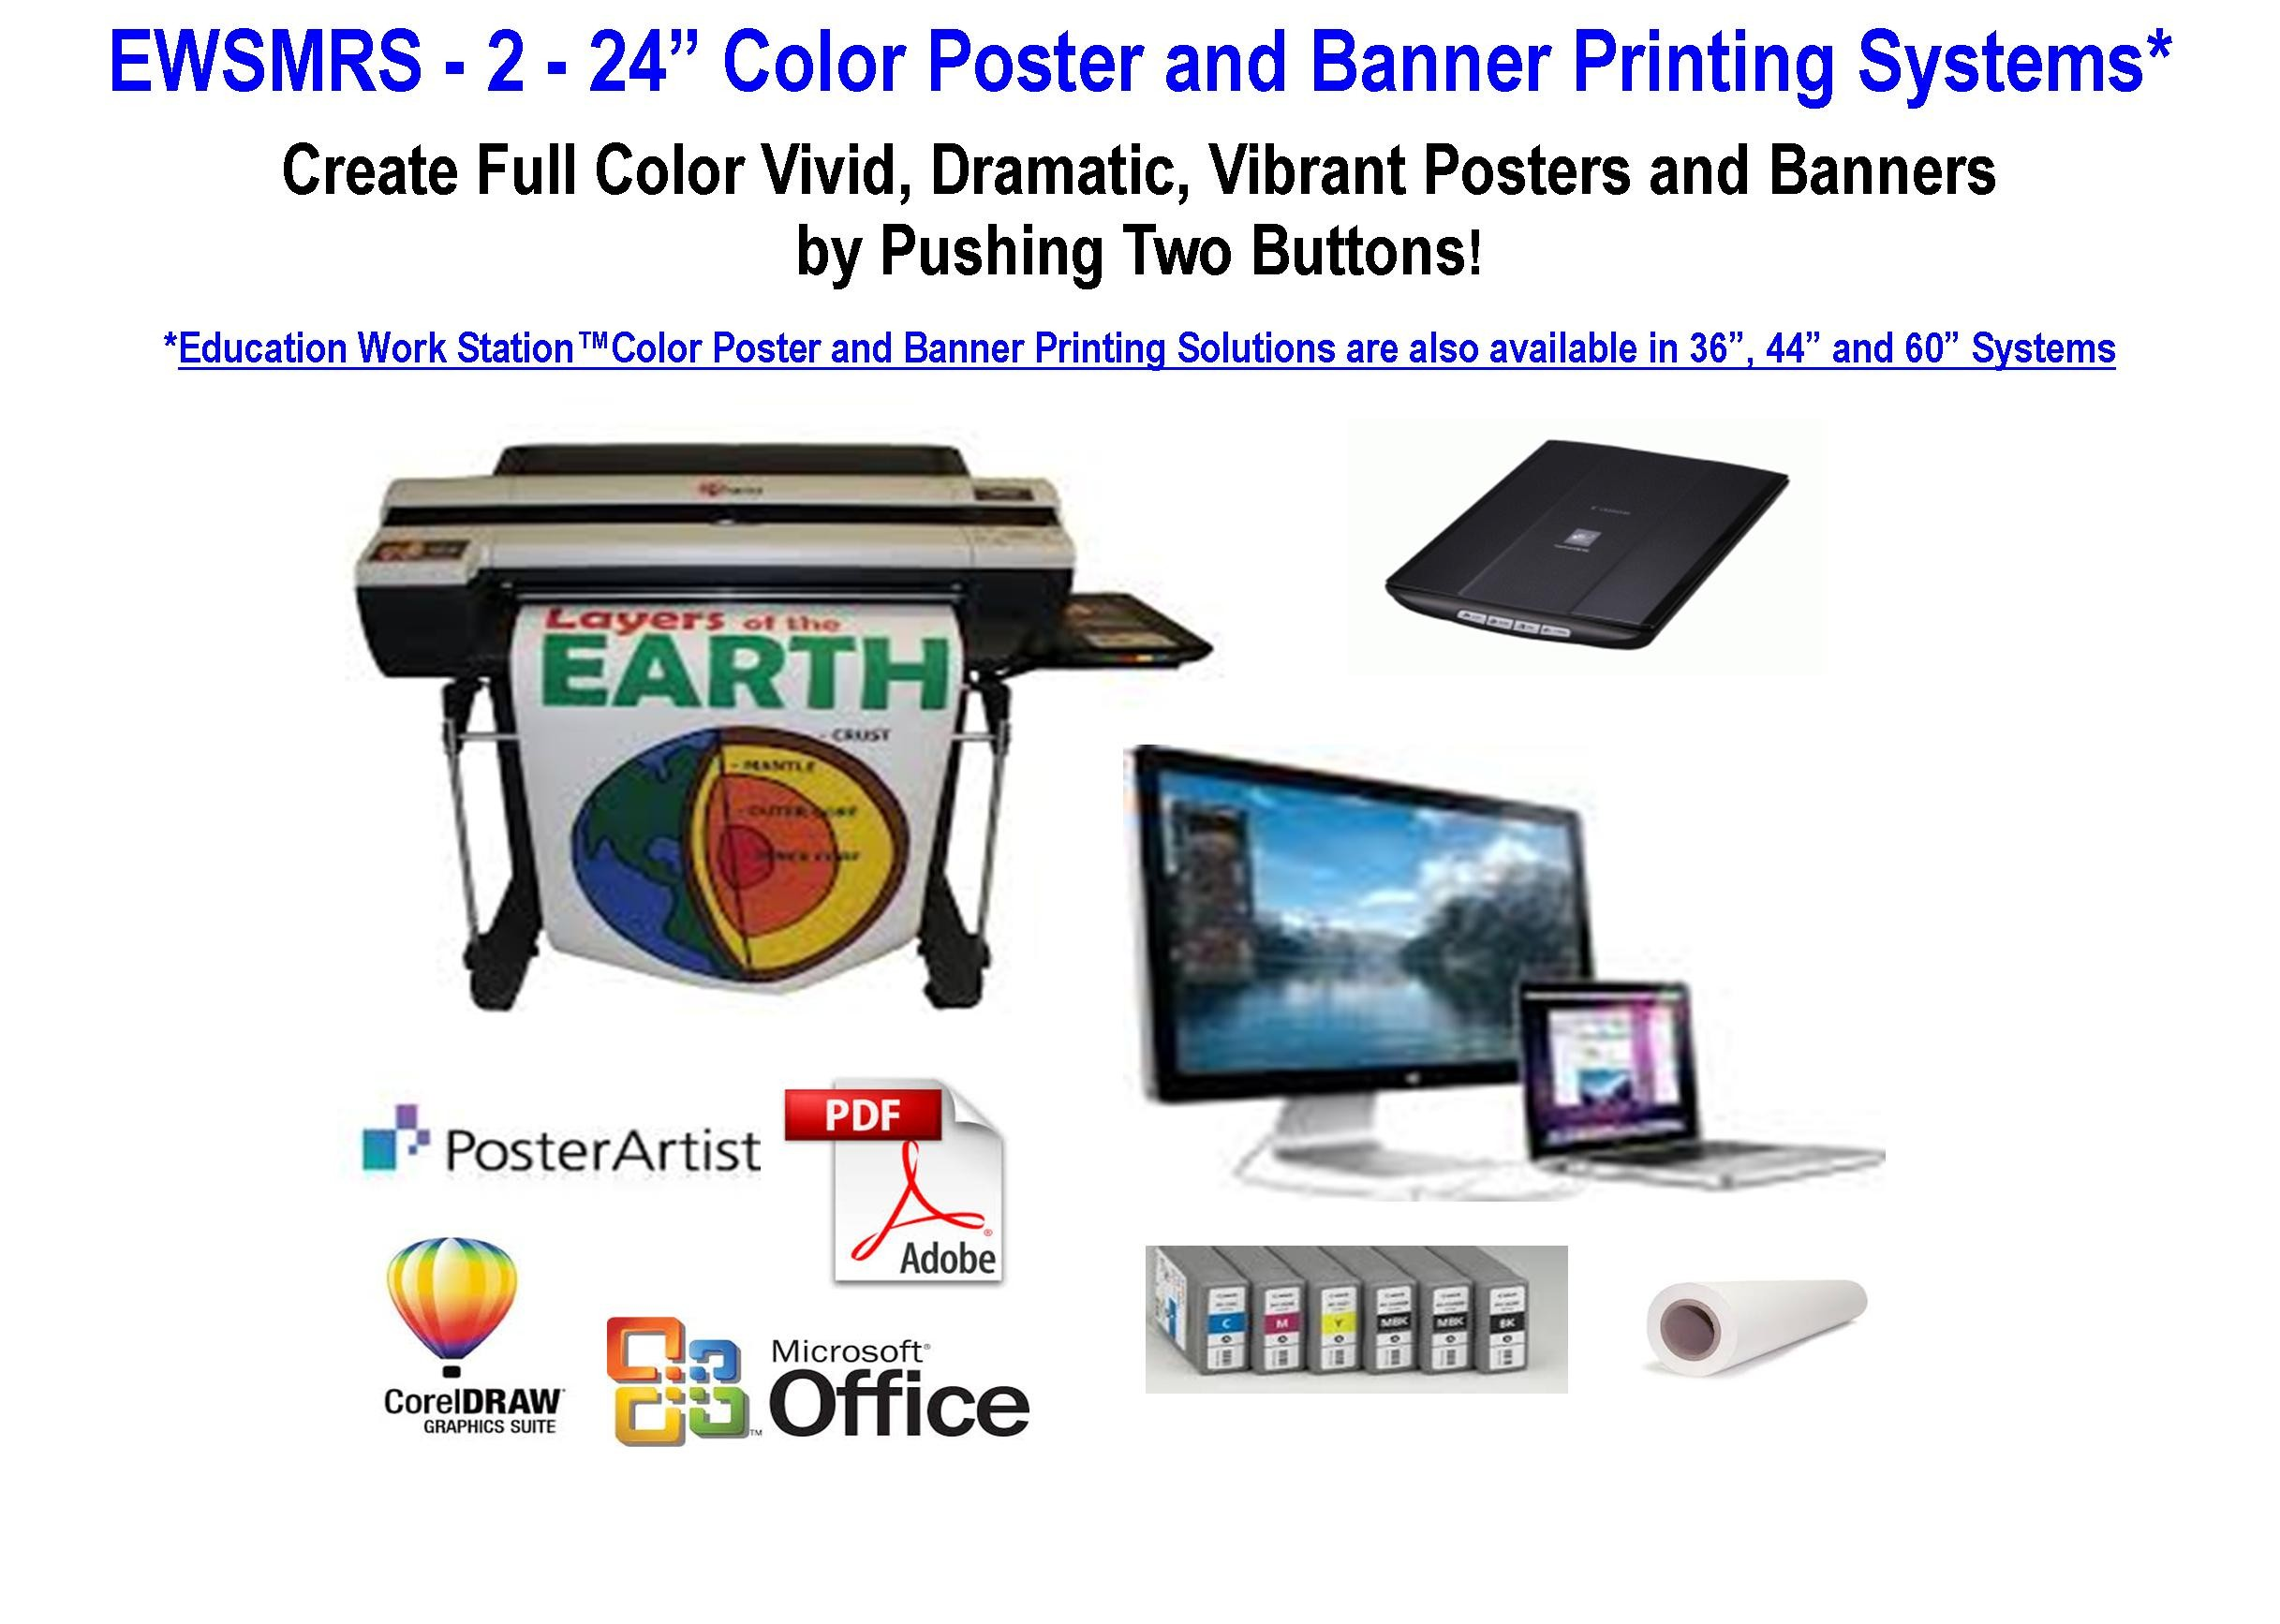 "EWSMRS - 2 - 24"" Color Poster and Banner Printing System"